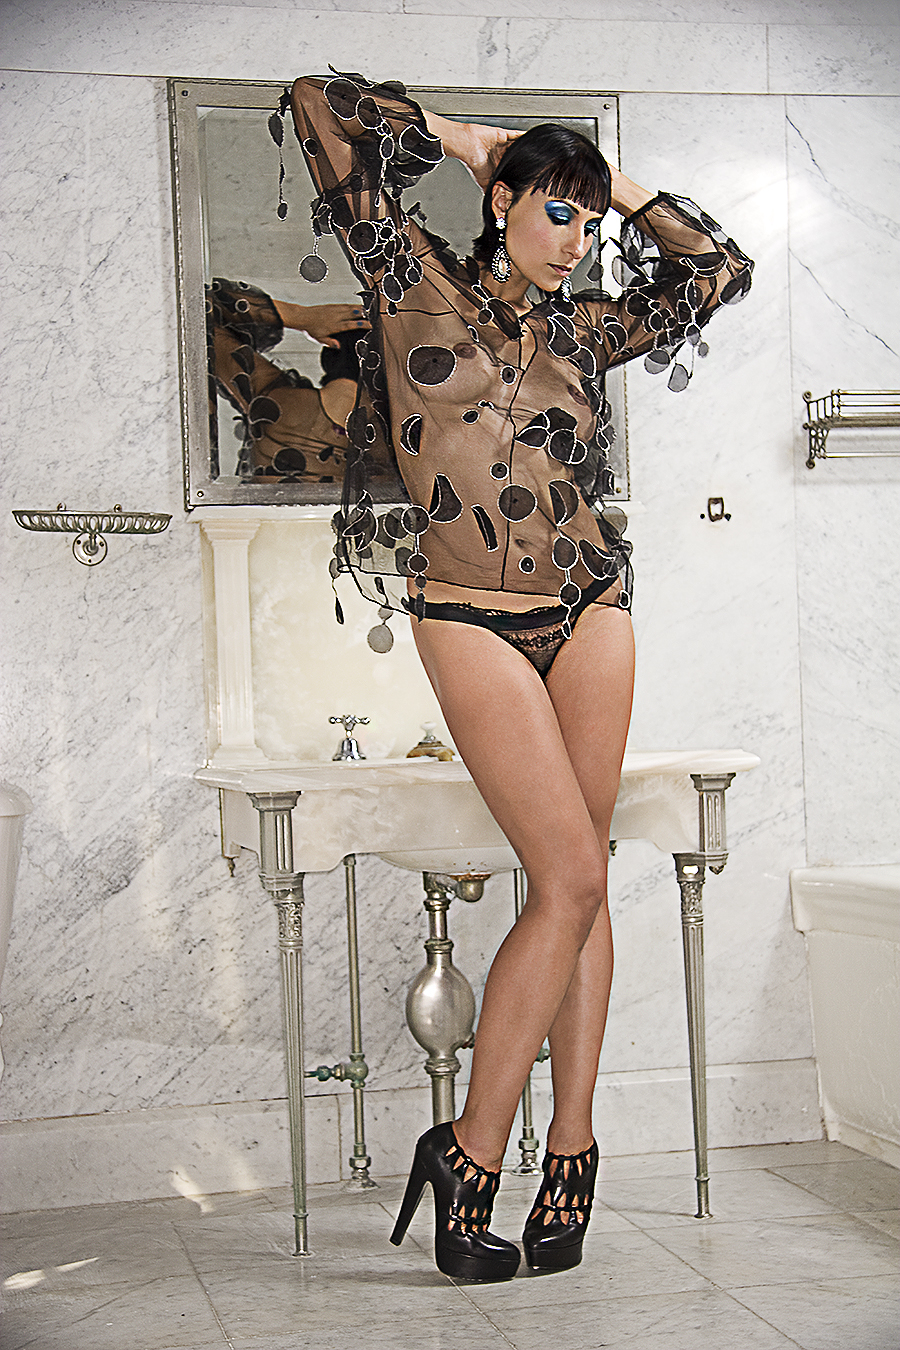 Tony_Ward_fashion_photography_bare_breasts_ethnic_sexy_women_red_lace_sheer_dress_black_fishnet_shoes_blue_eye_shadow_large_marble_bathrooms_elegance_fireplaces_chandeliers_old_mansions_Elkins_Park_estates_model_Carmelita_Martel copy